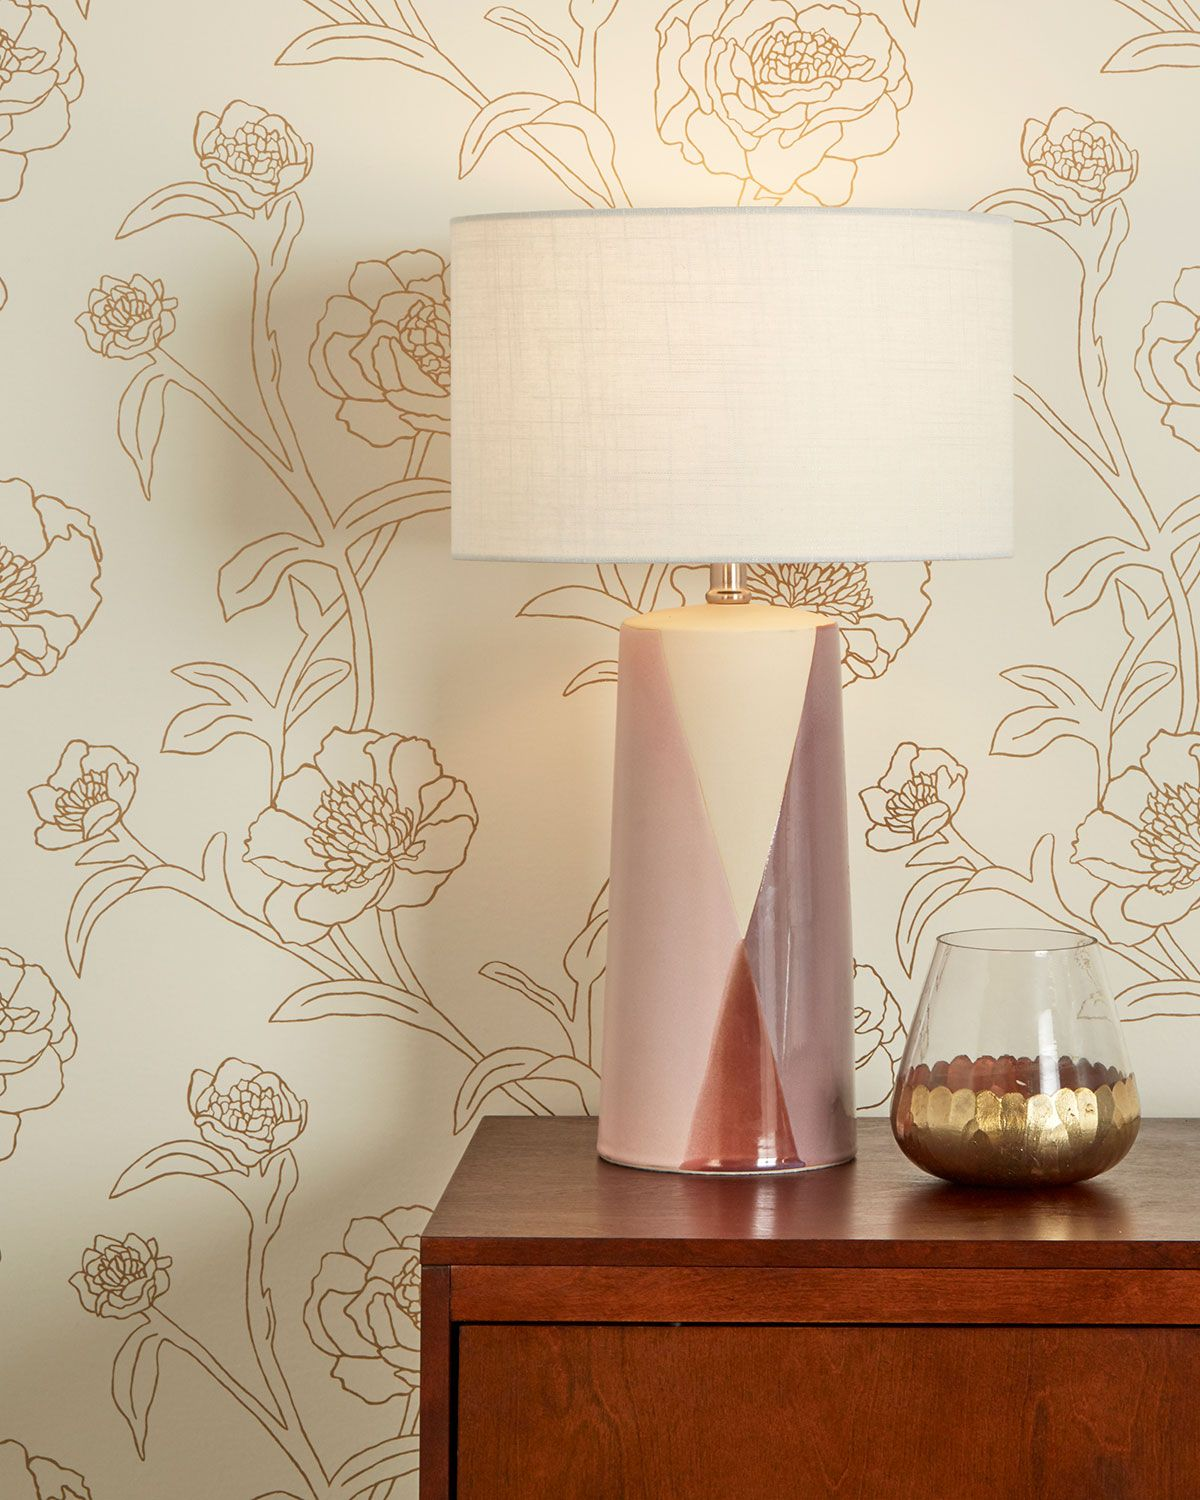 Tempaper Peonies Removable Wallpaper In 2020 With Images Removable Wallpaper Leaf Wallpaper Peony Wallpaper